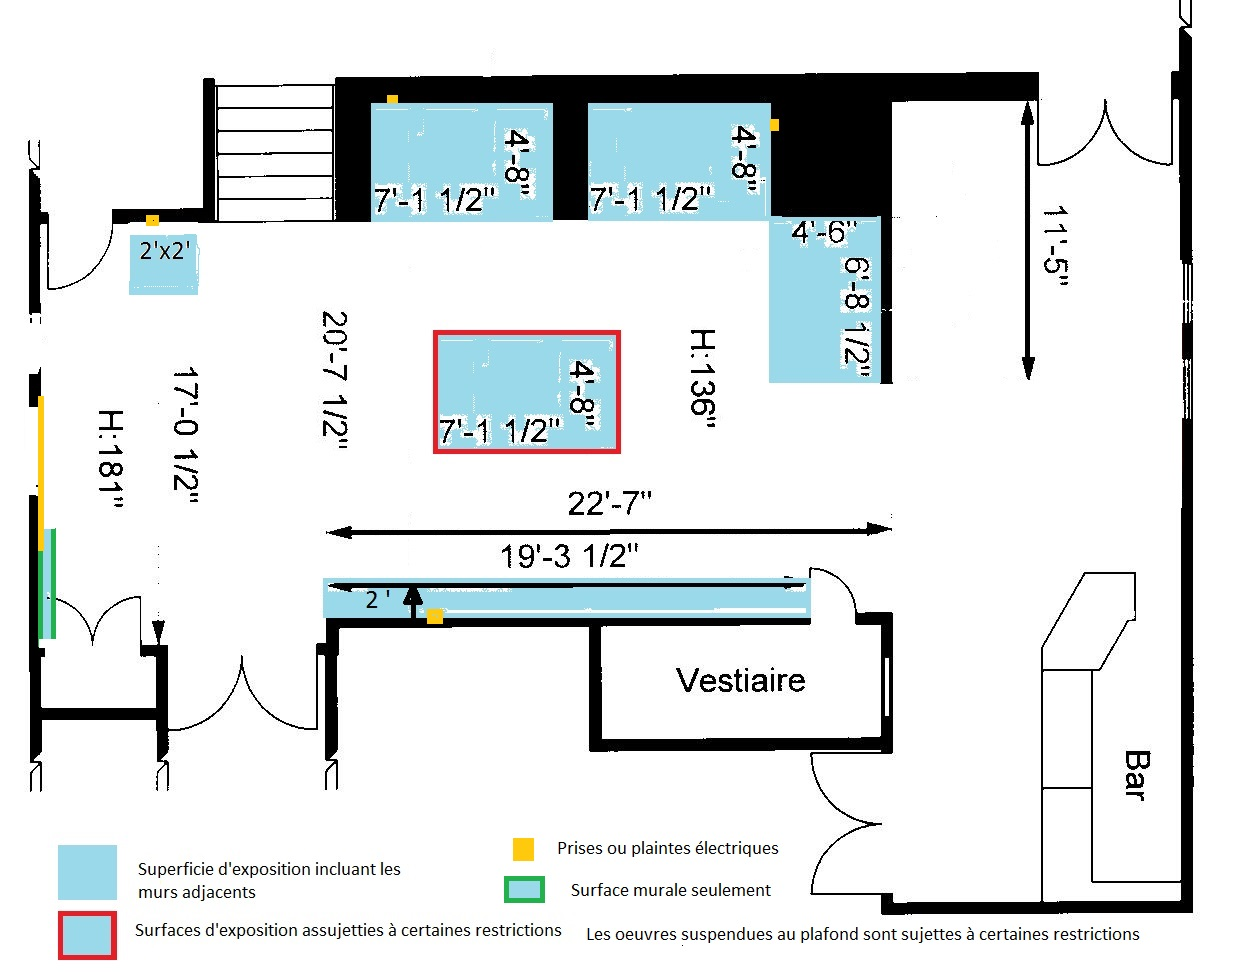 Plan du grand foyer - expositions